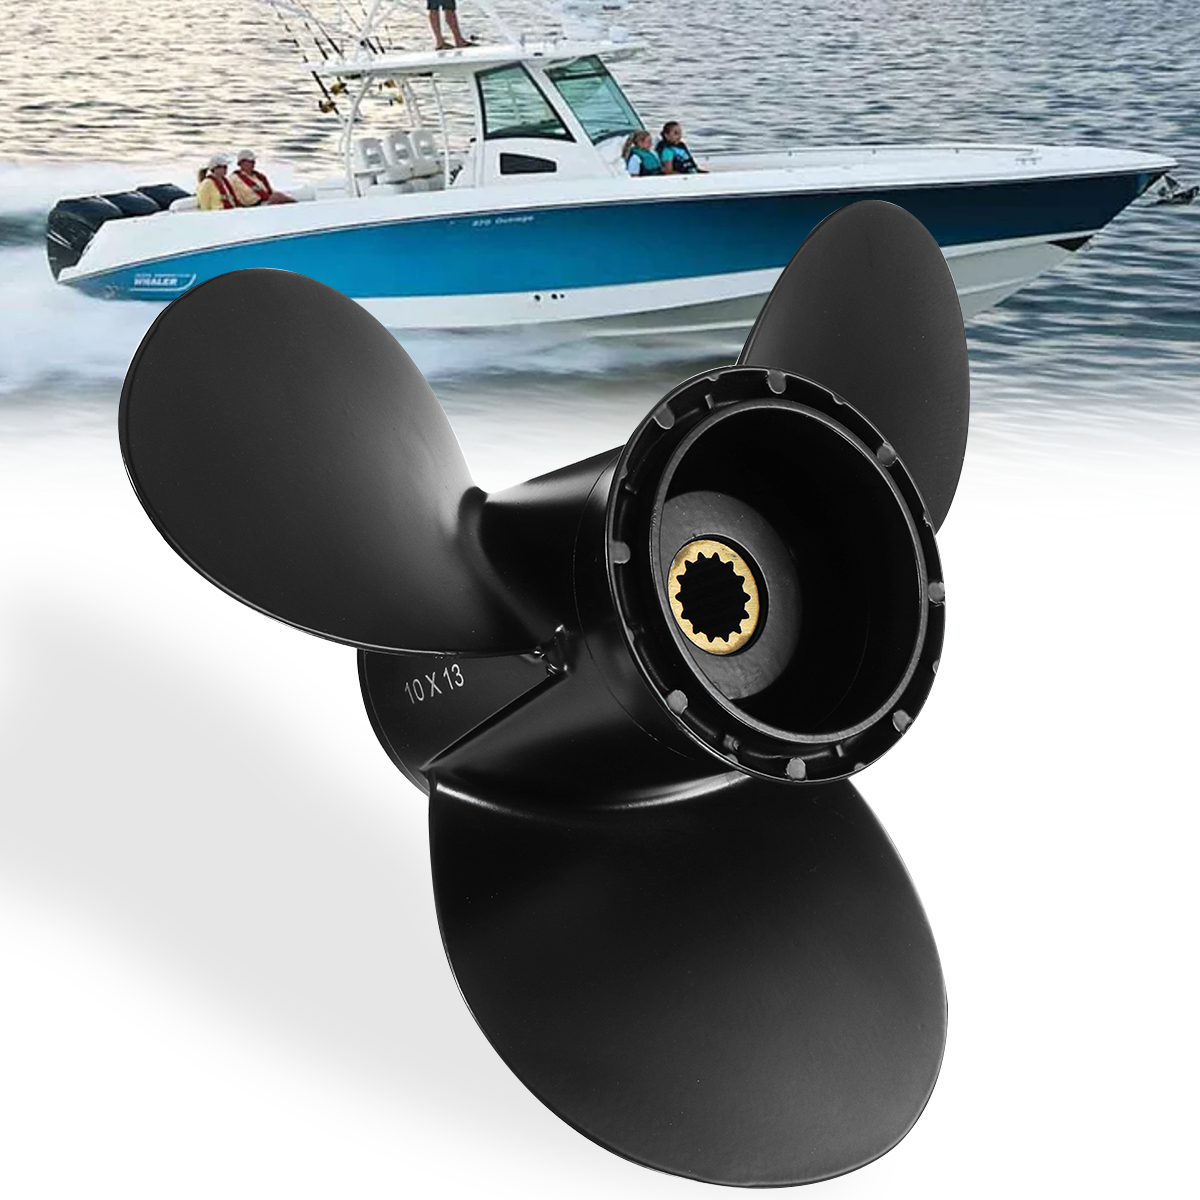 778863 10 X 13 Marine Outboard Propeller For Evinrude Johnson 15-35HP Aluminum Alloy Black 3 Blades R Rotation 14 Spline Tooth